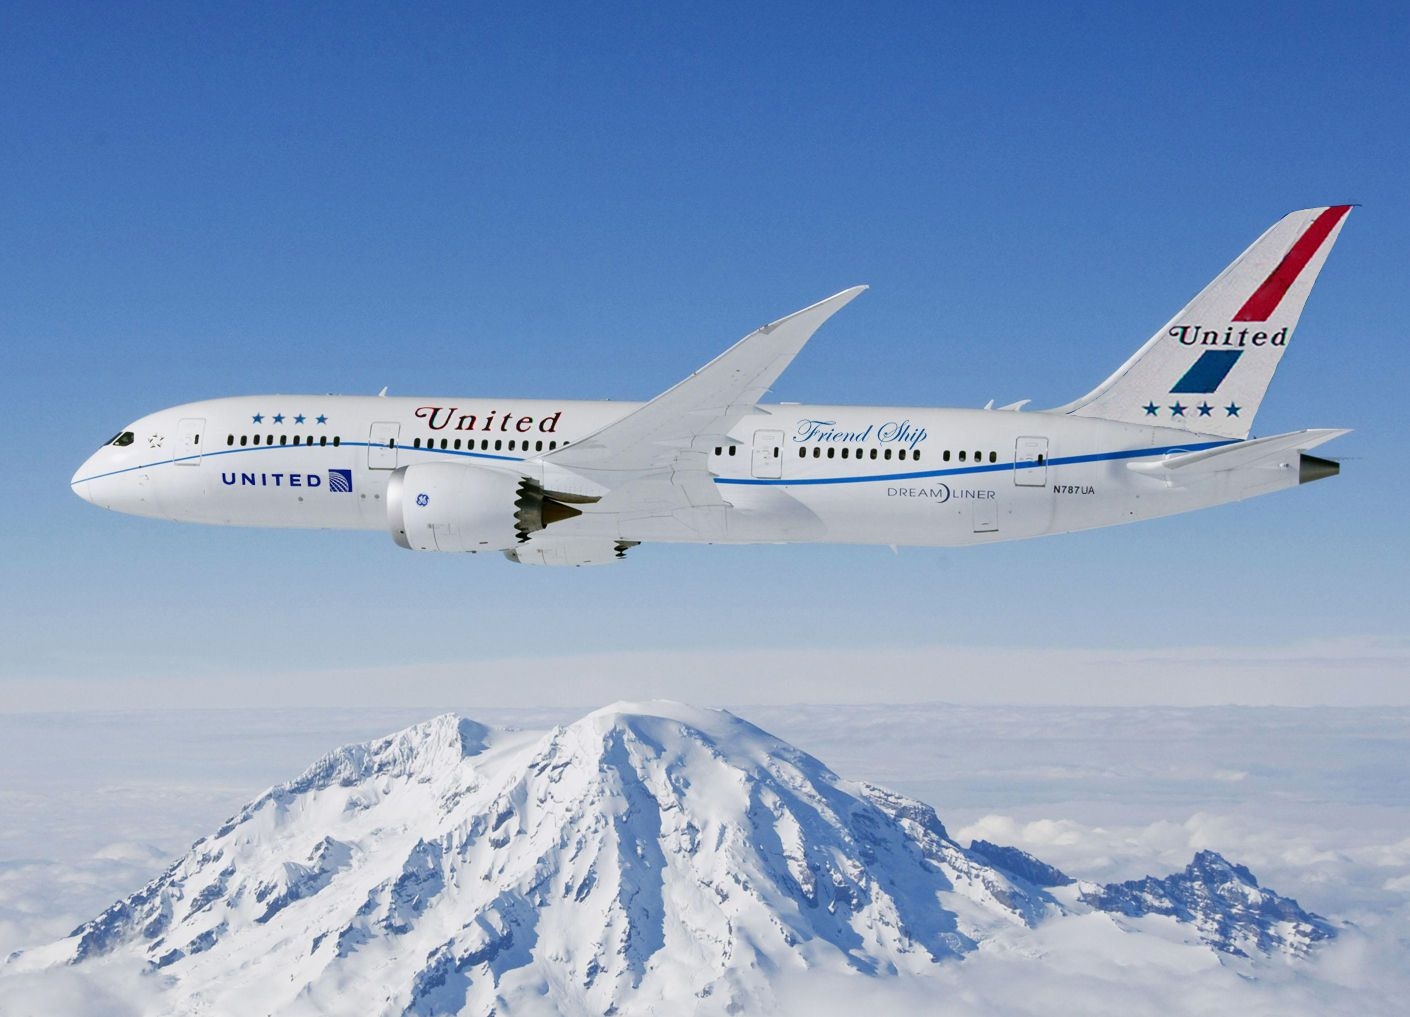 Retro United Airlines Livery, Boeing 787... looks lighter